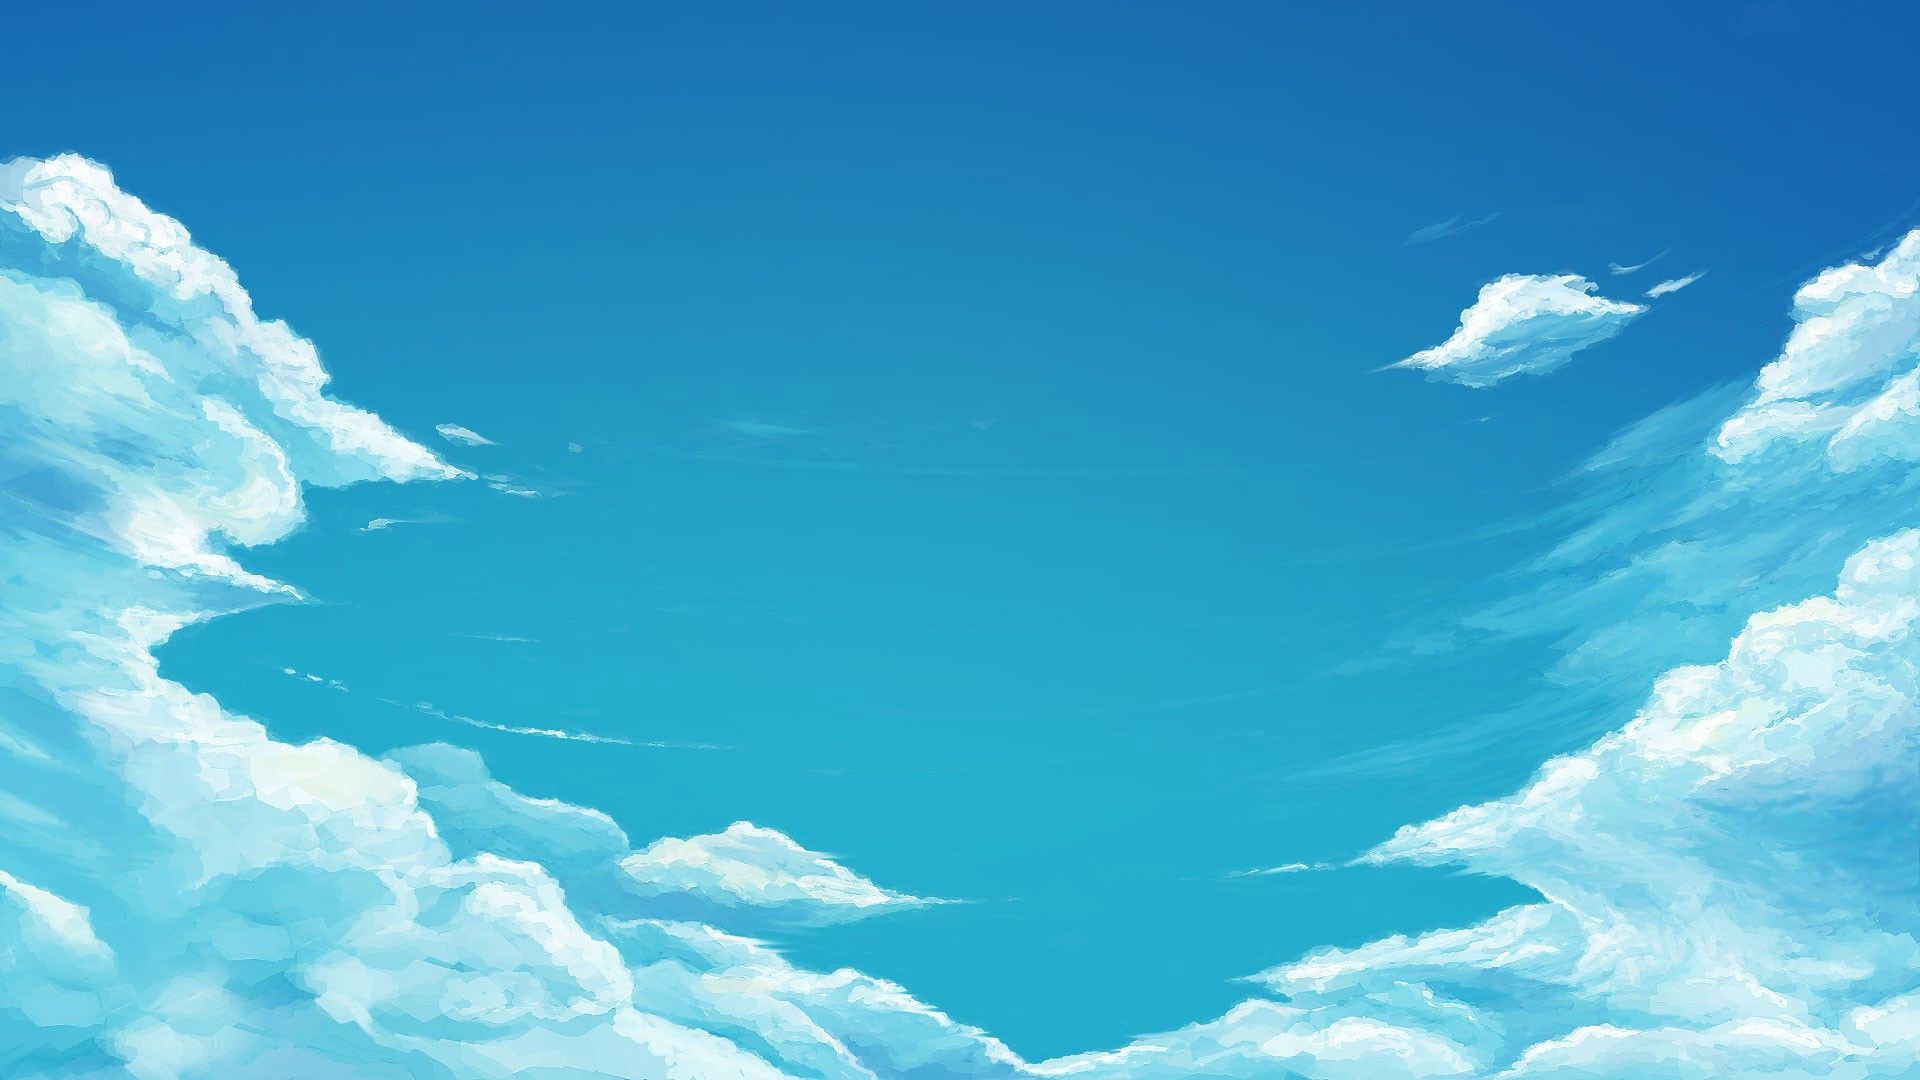 88 Anime Sky Wallpapers On Wallpapersafari